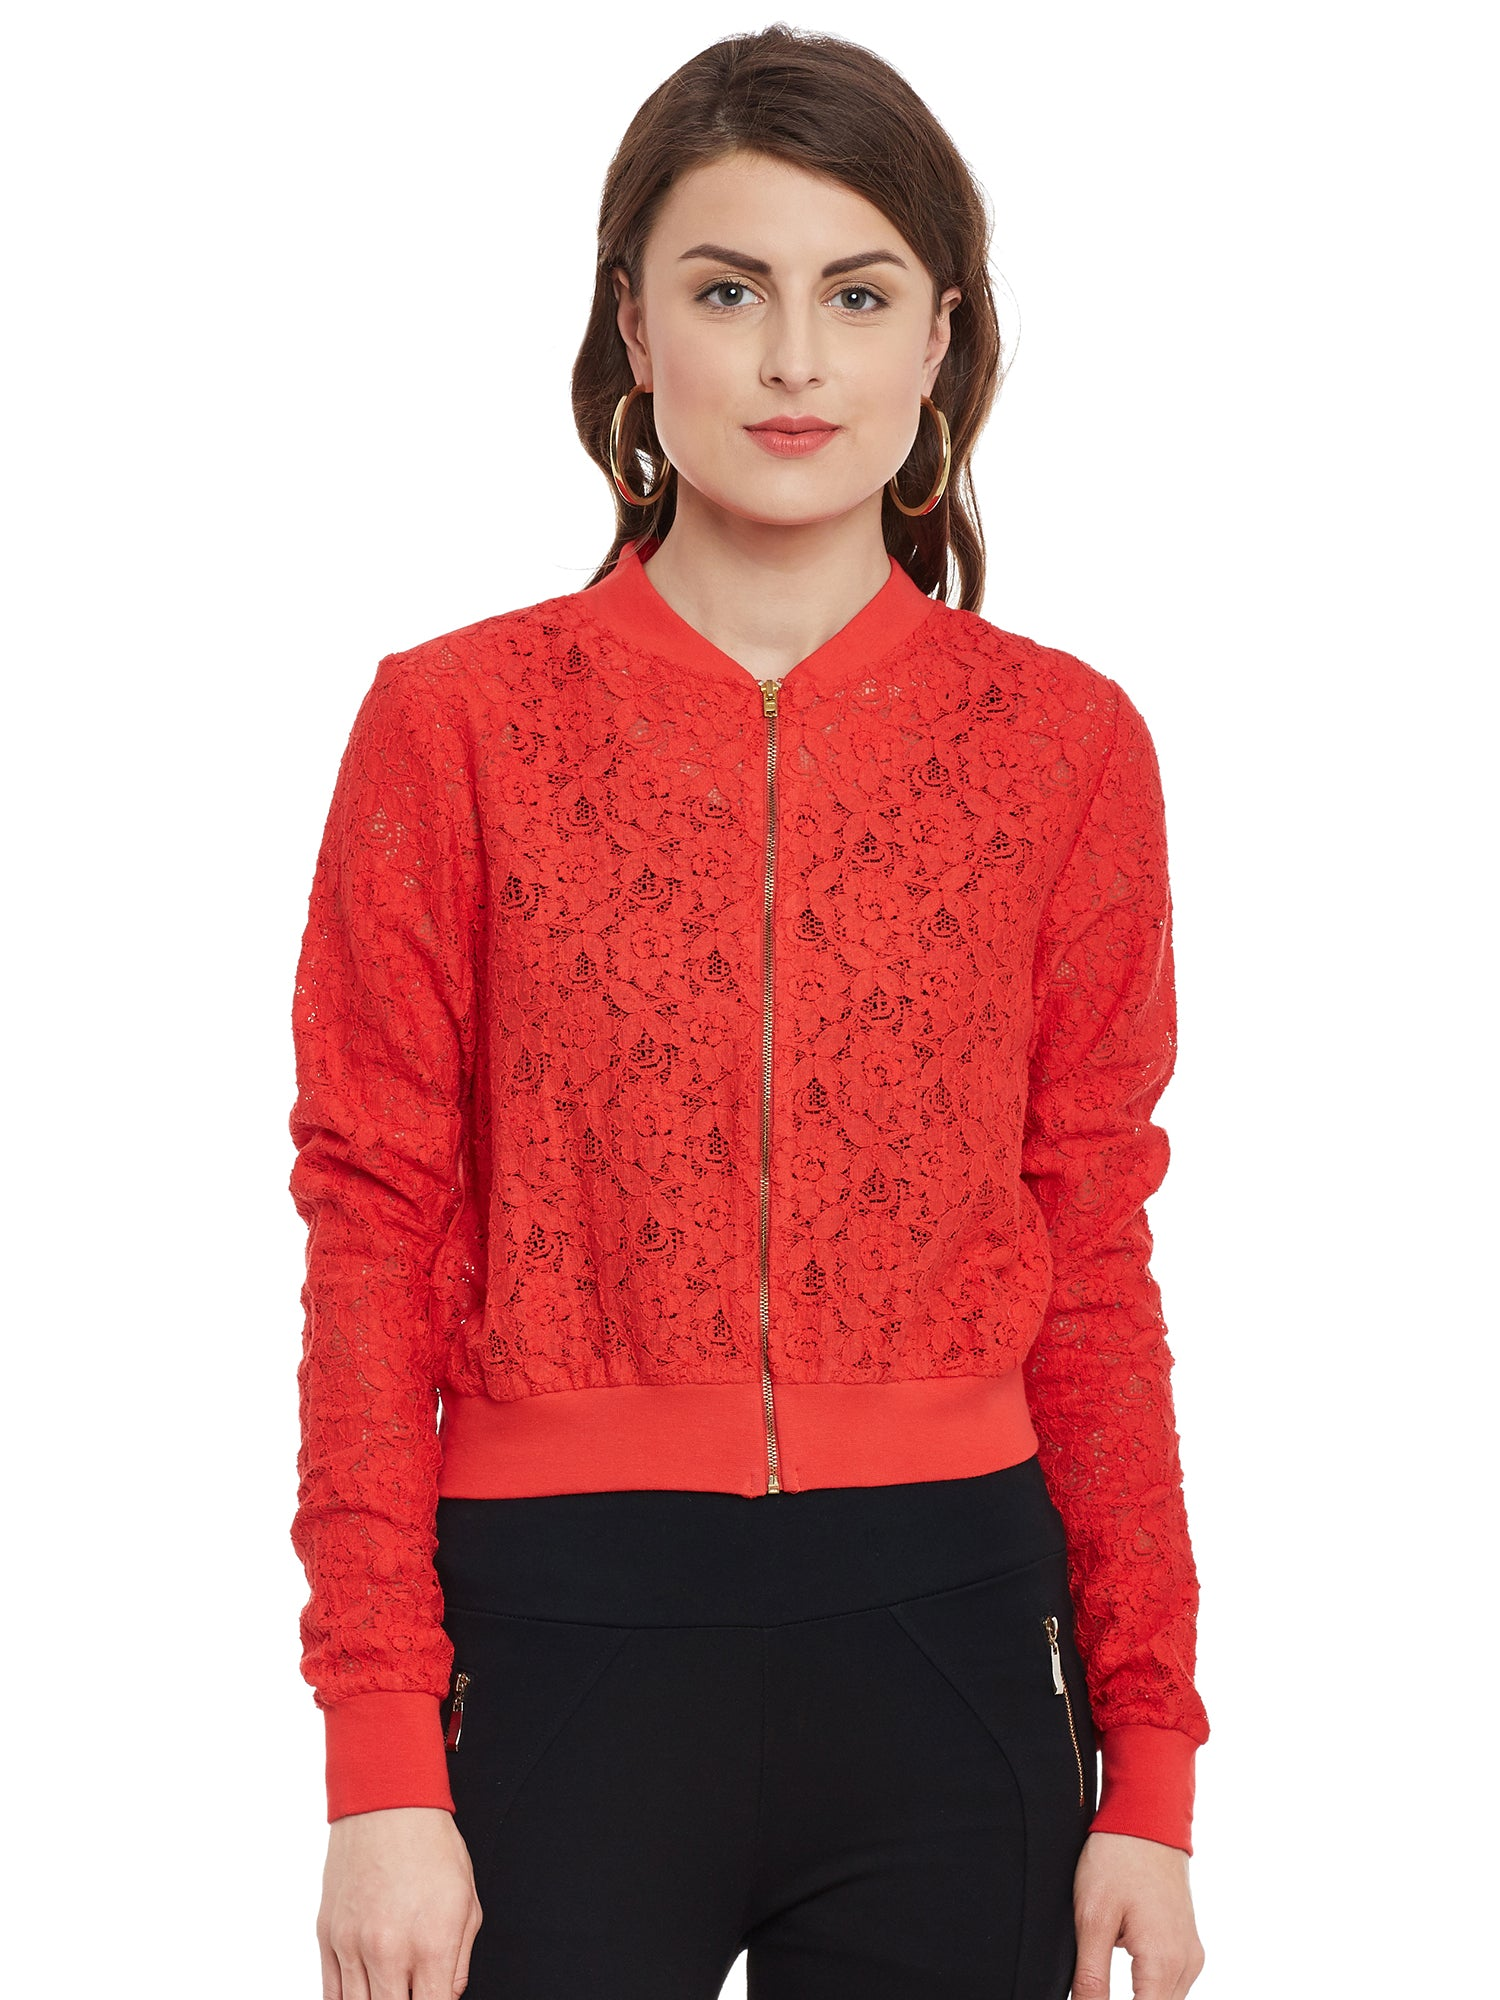 SHEYA LACE JACKET